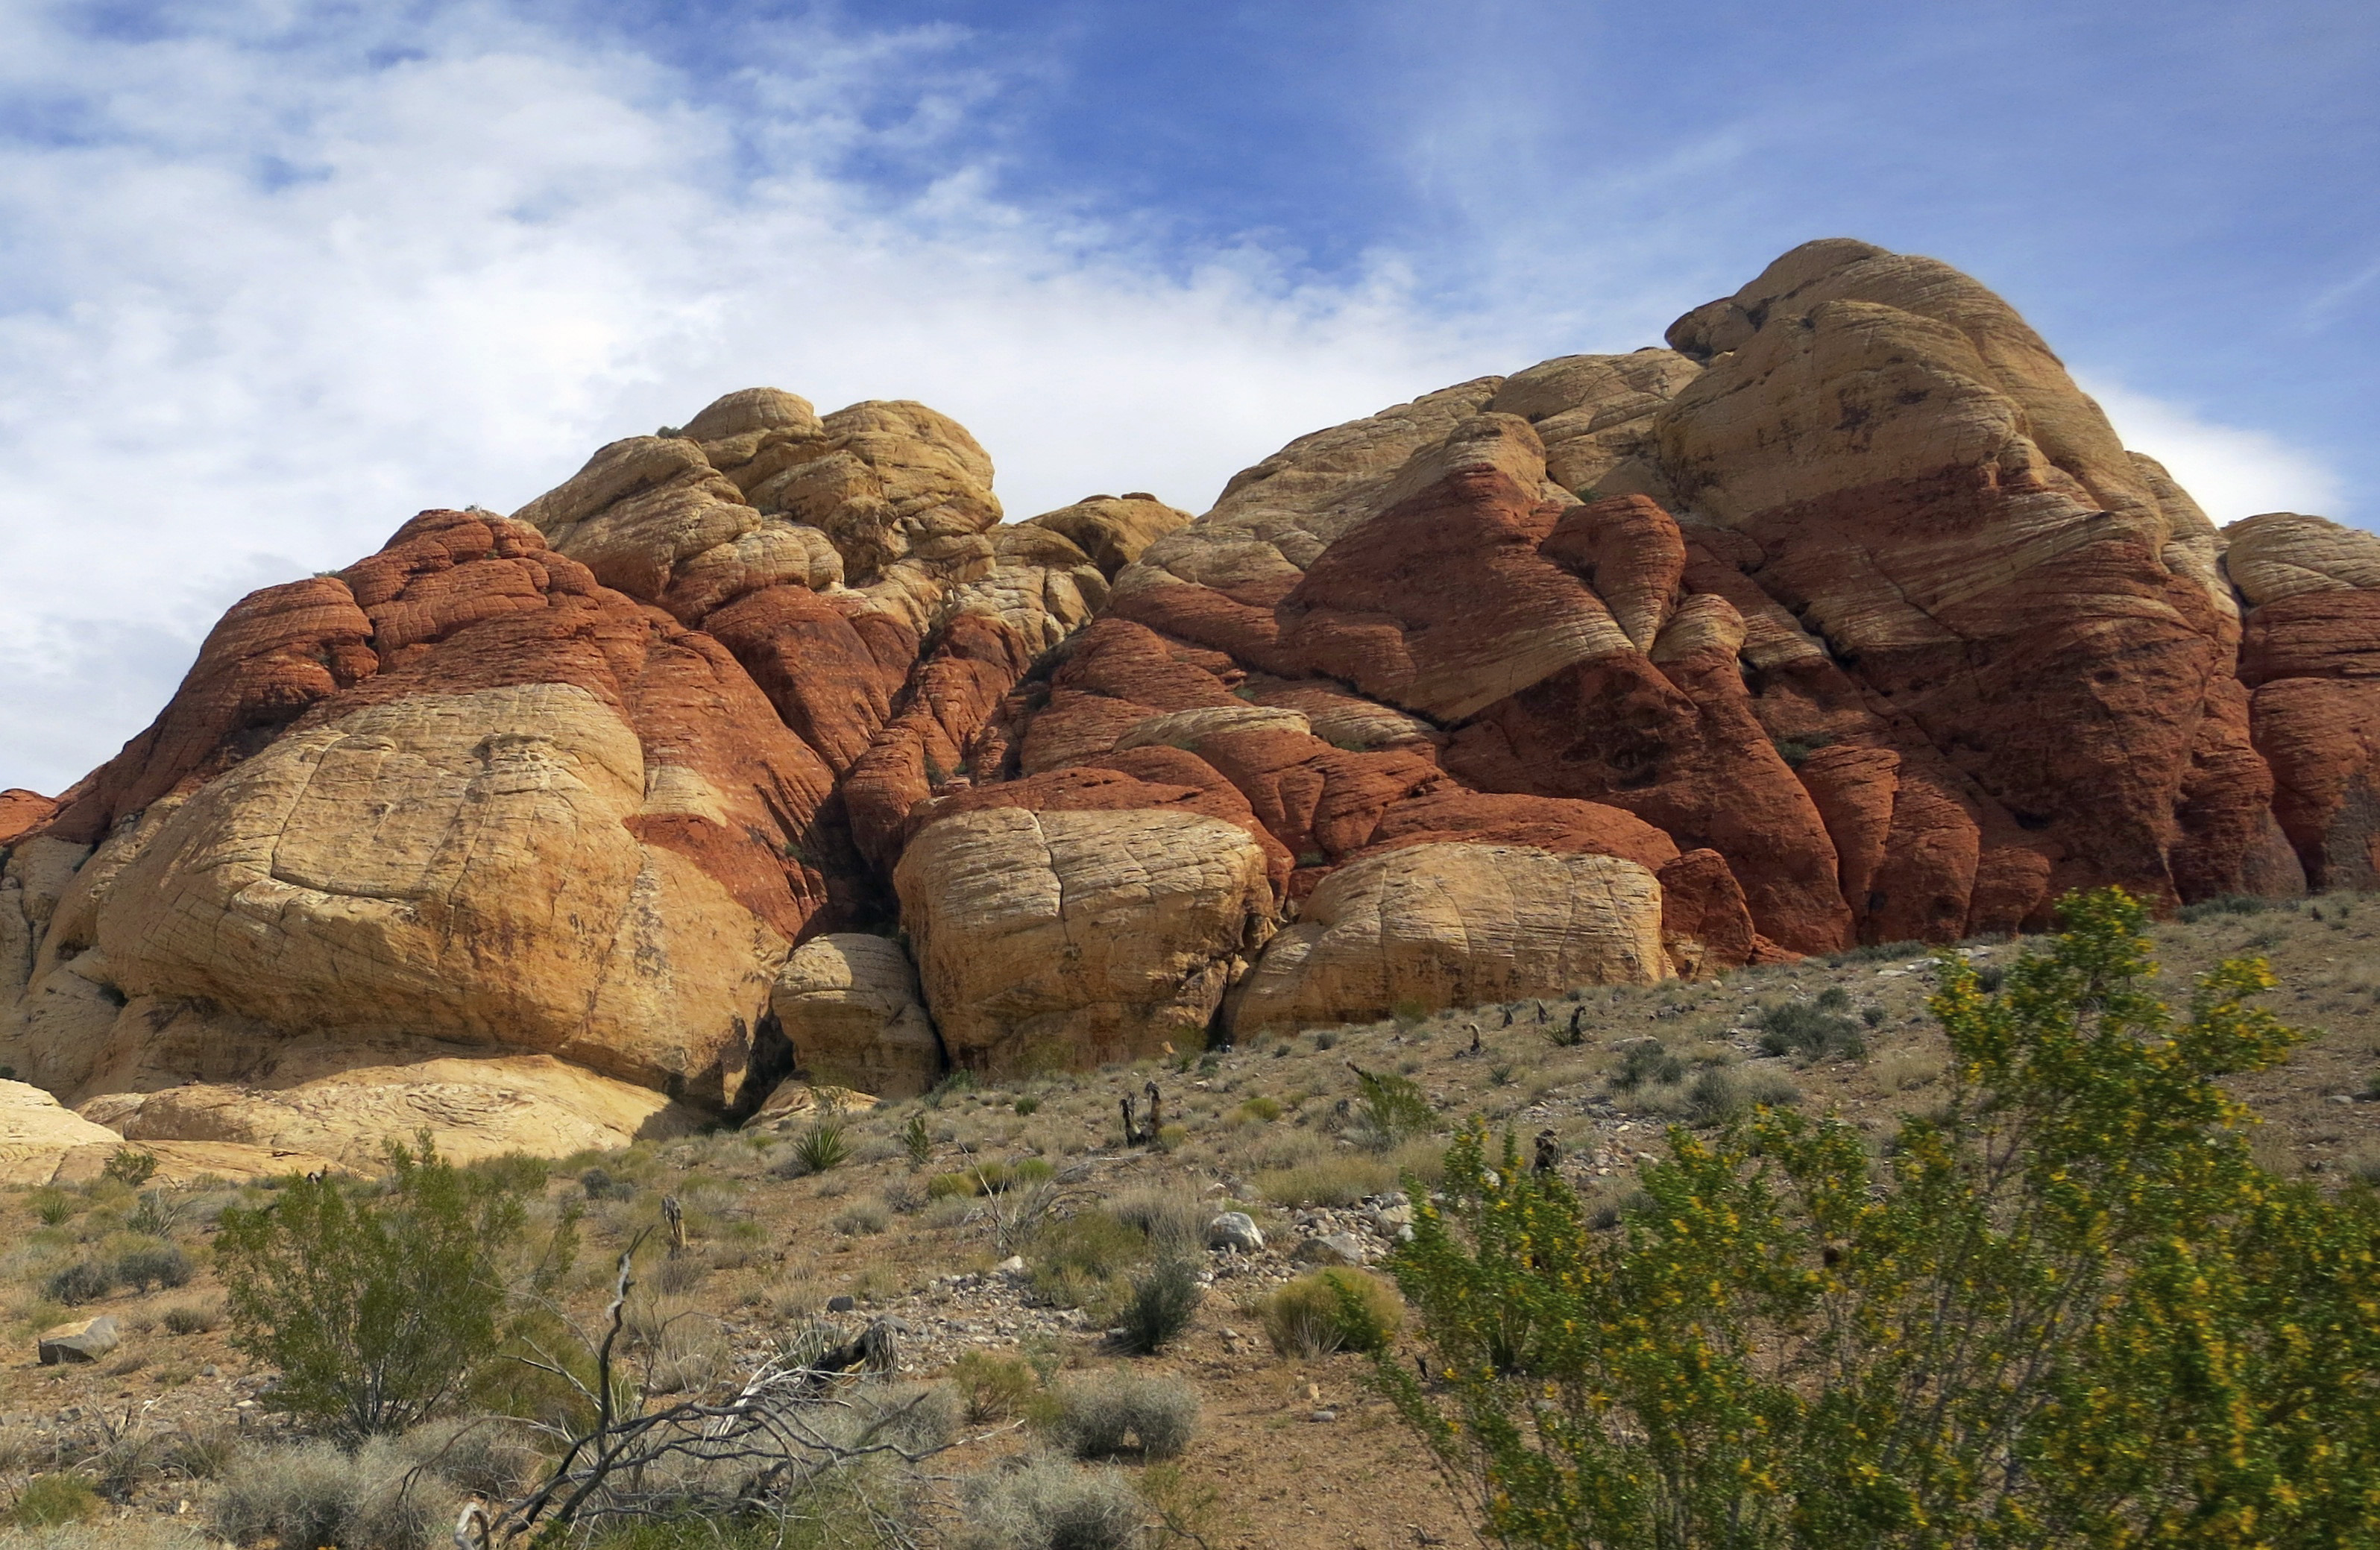 March: Red Rock Canyon National Conservation Area in southern Nevada.